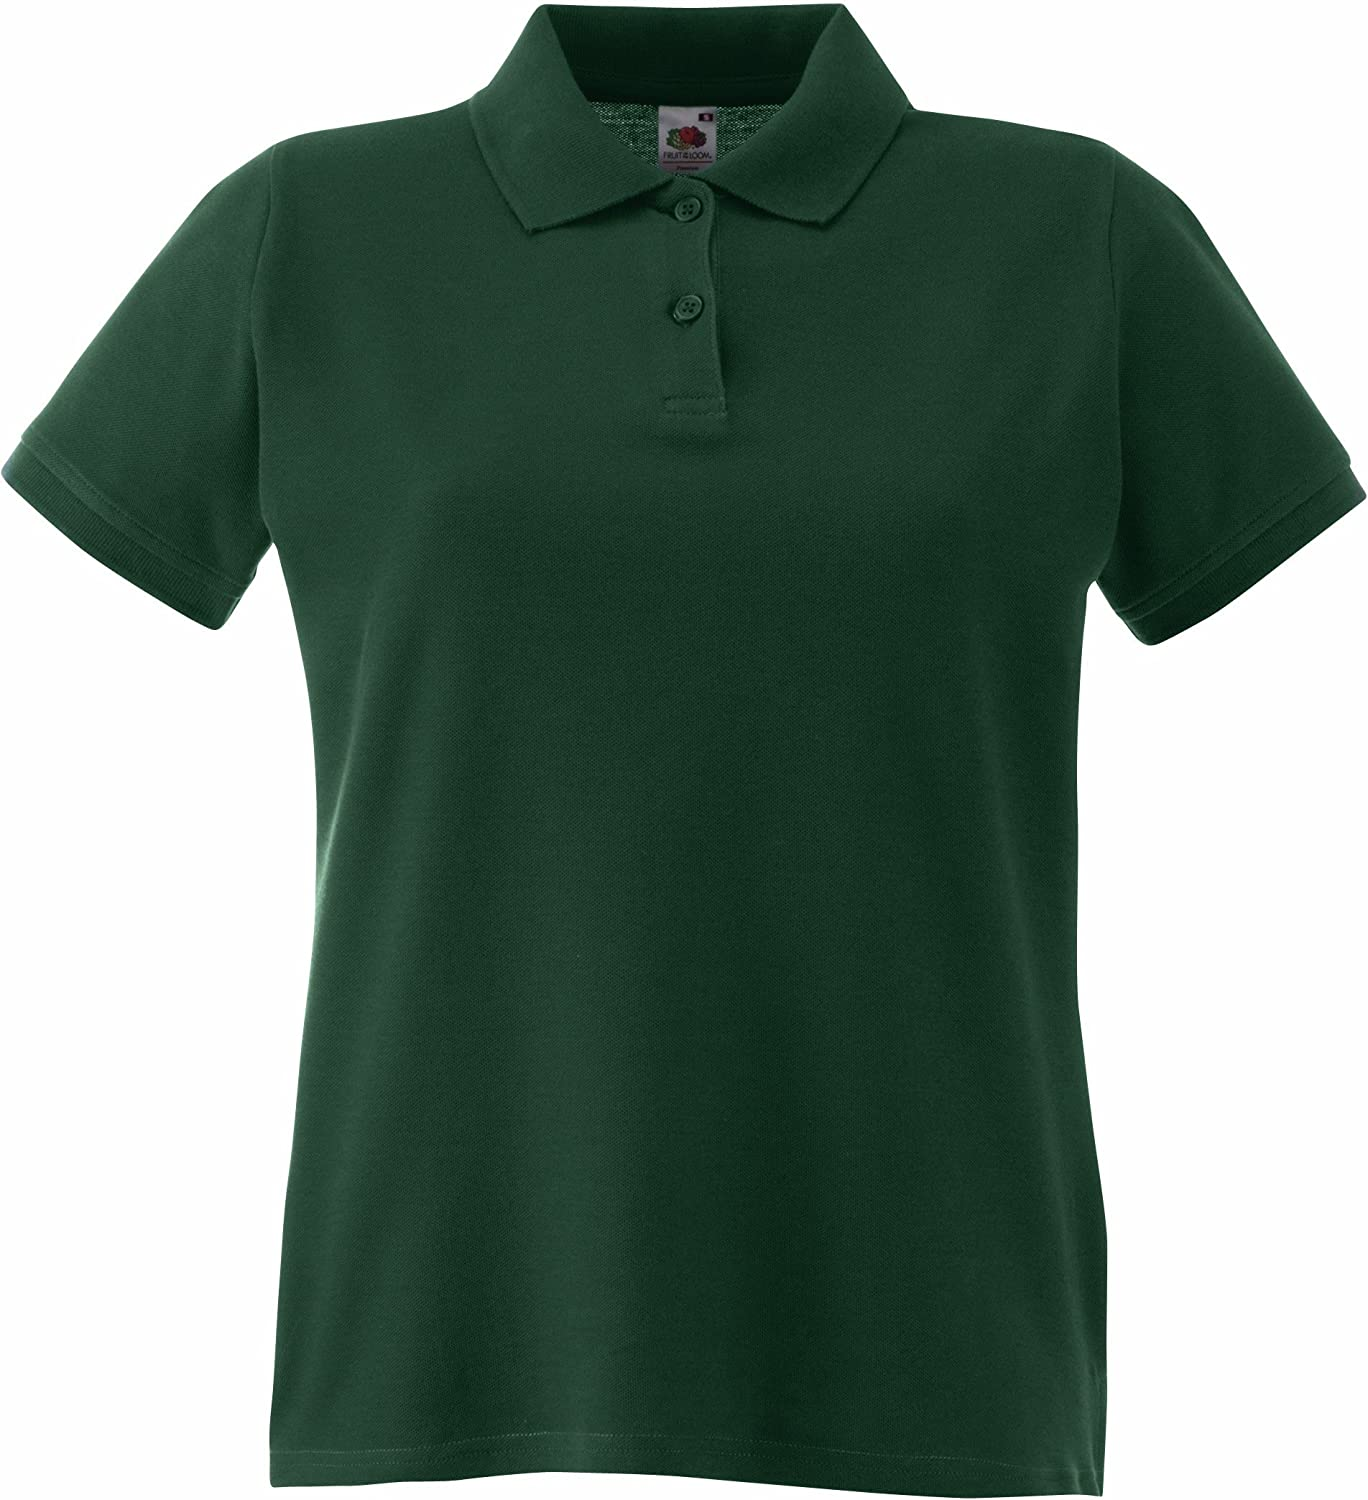 Fruit of the Loom Ladies Lady-Fit Short Sleeve Polo Shirt 63-560-0